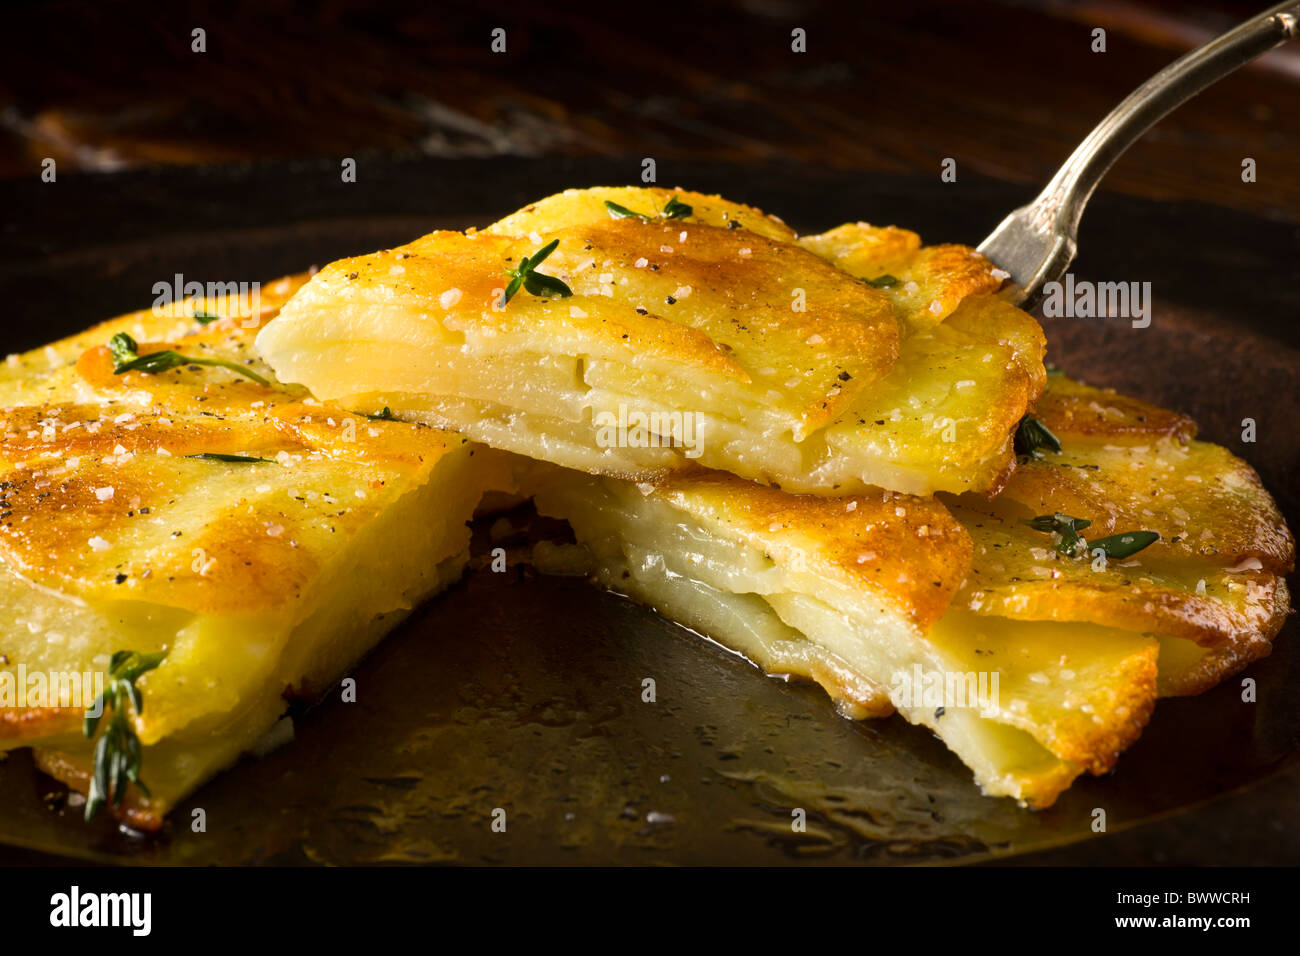 Potato Galettes or Anna garnished with fresh thyme, salt and pepper and served on a rustic plate. Stock Photo